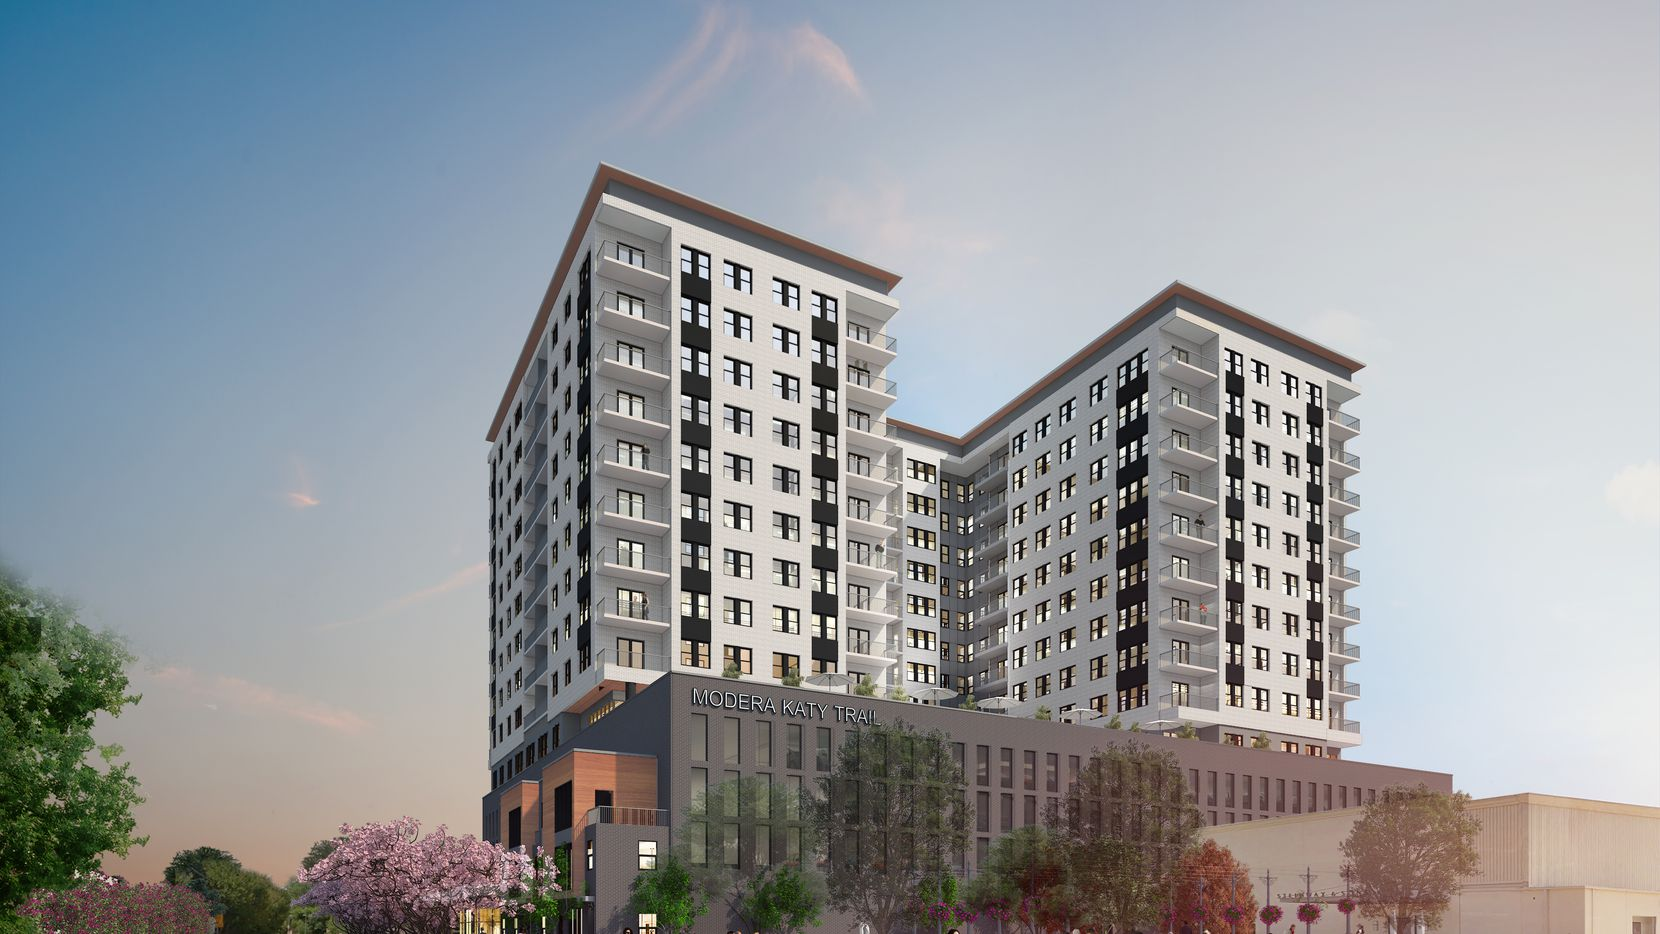 The Modera Katy Trail apartments will be constructed on U.S. 75 just south of Mockingbird Lane.